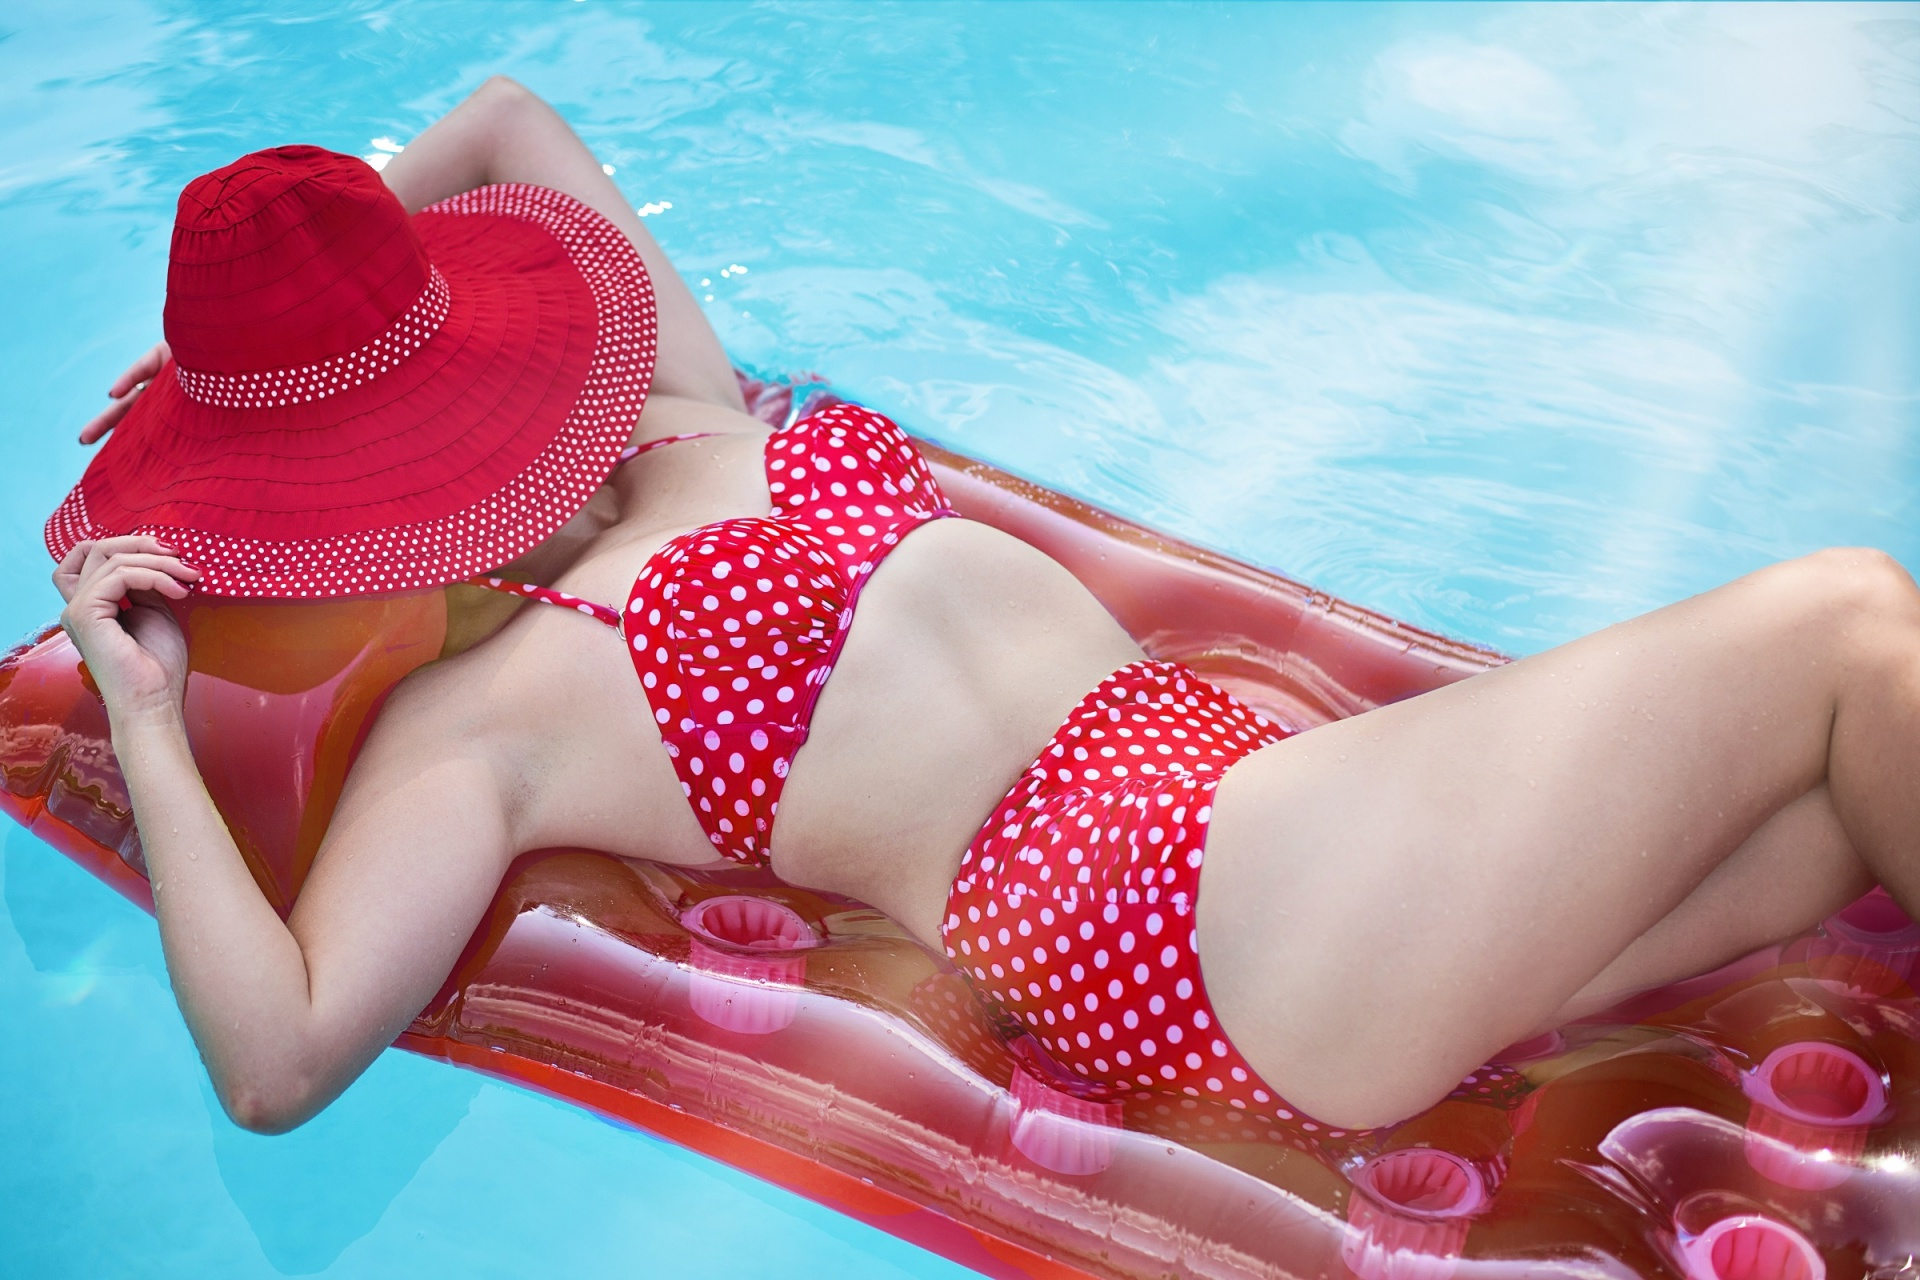 woman-in-a-red-swimming-suit.jpg